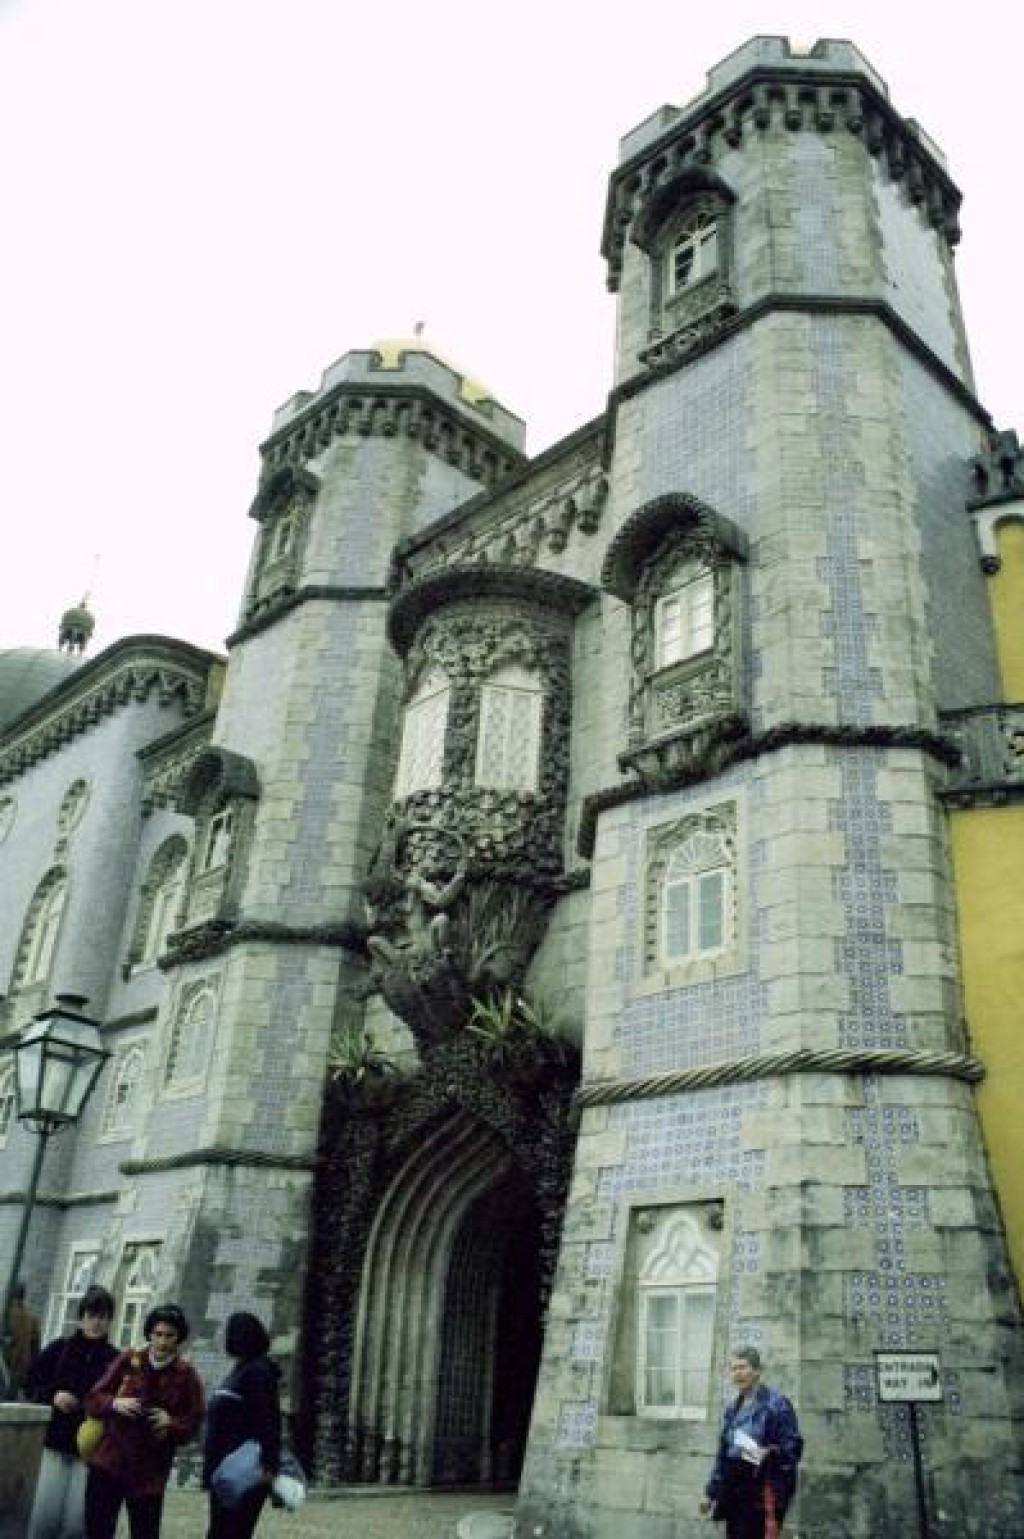 Sintra was one of the most interesting places we visited in Portugal.  It is home to three different castles.